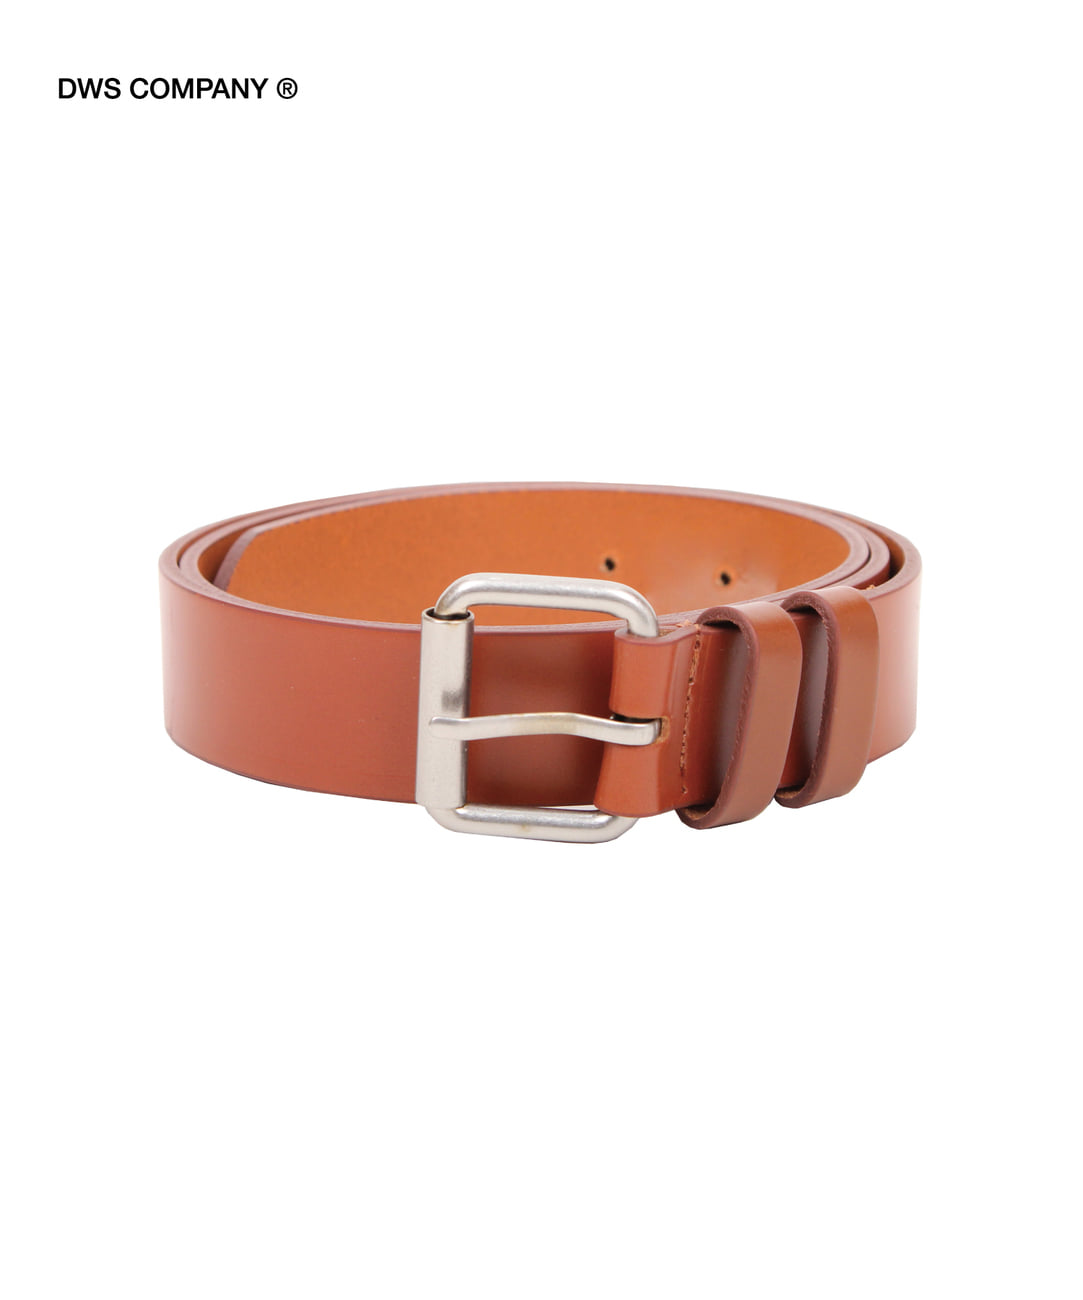 DWS ROLLING LEATHER BELT(BROWN)